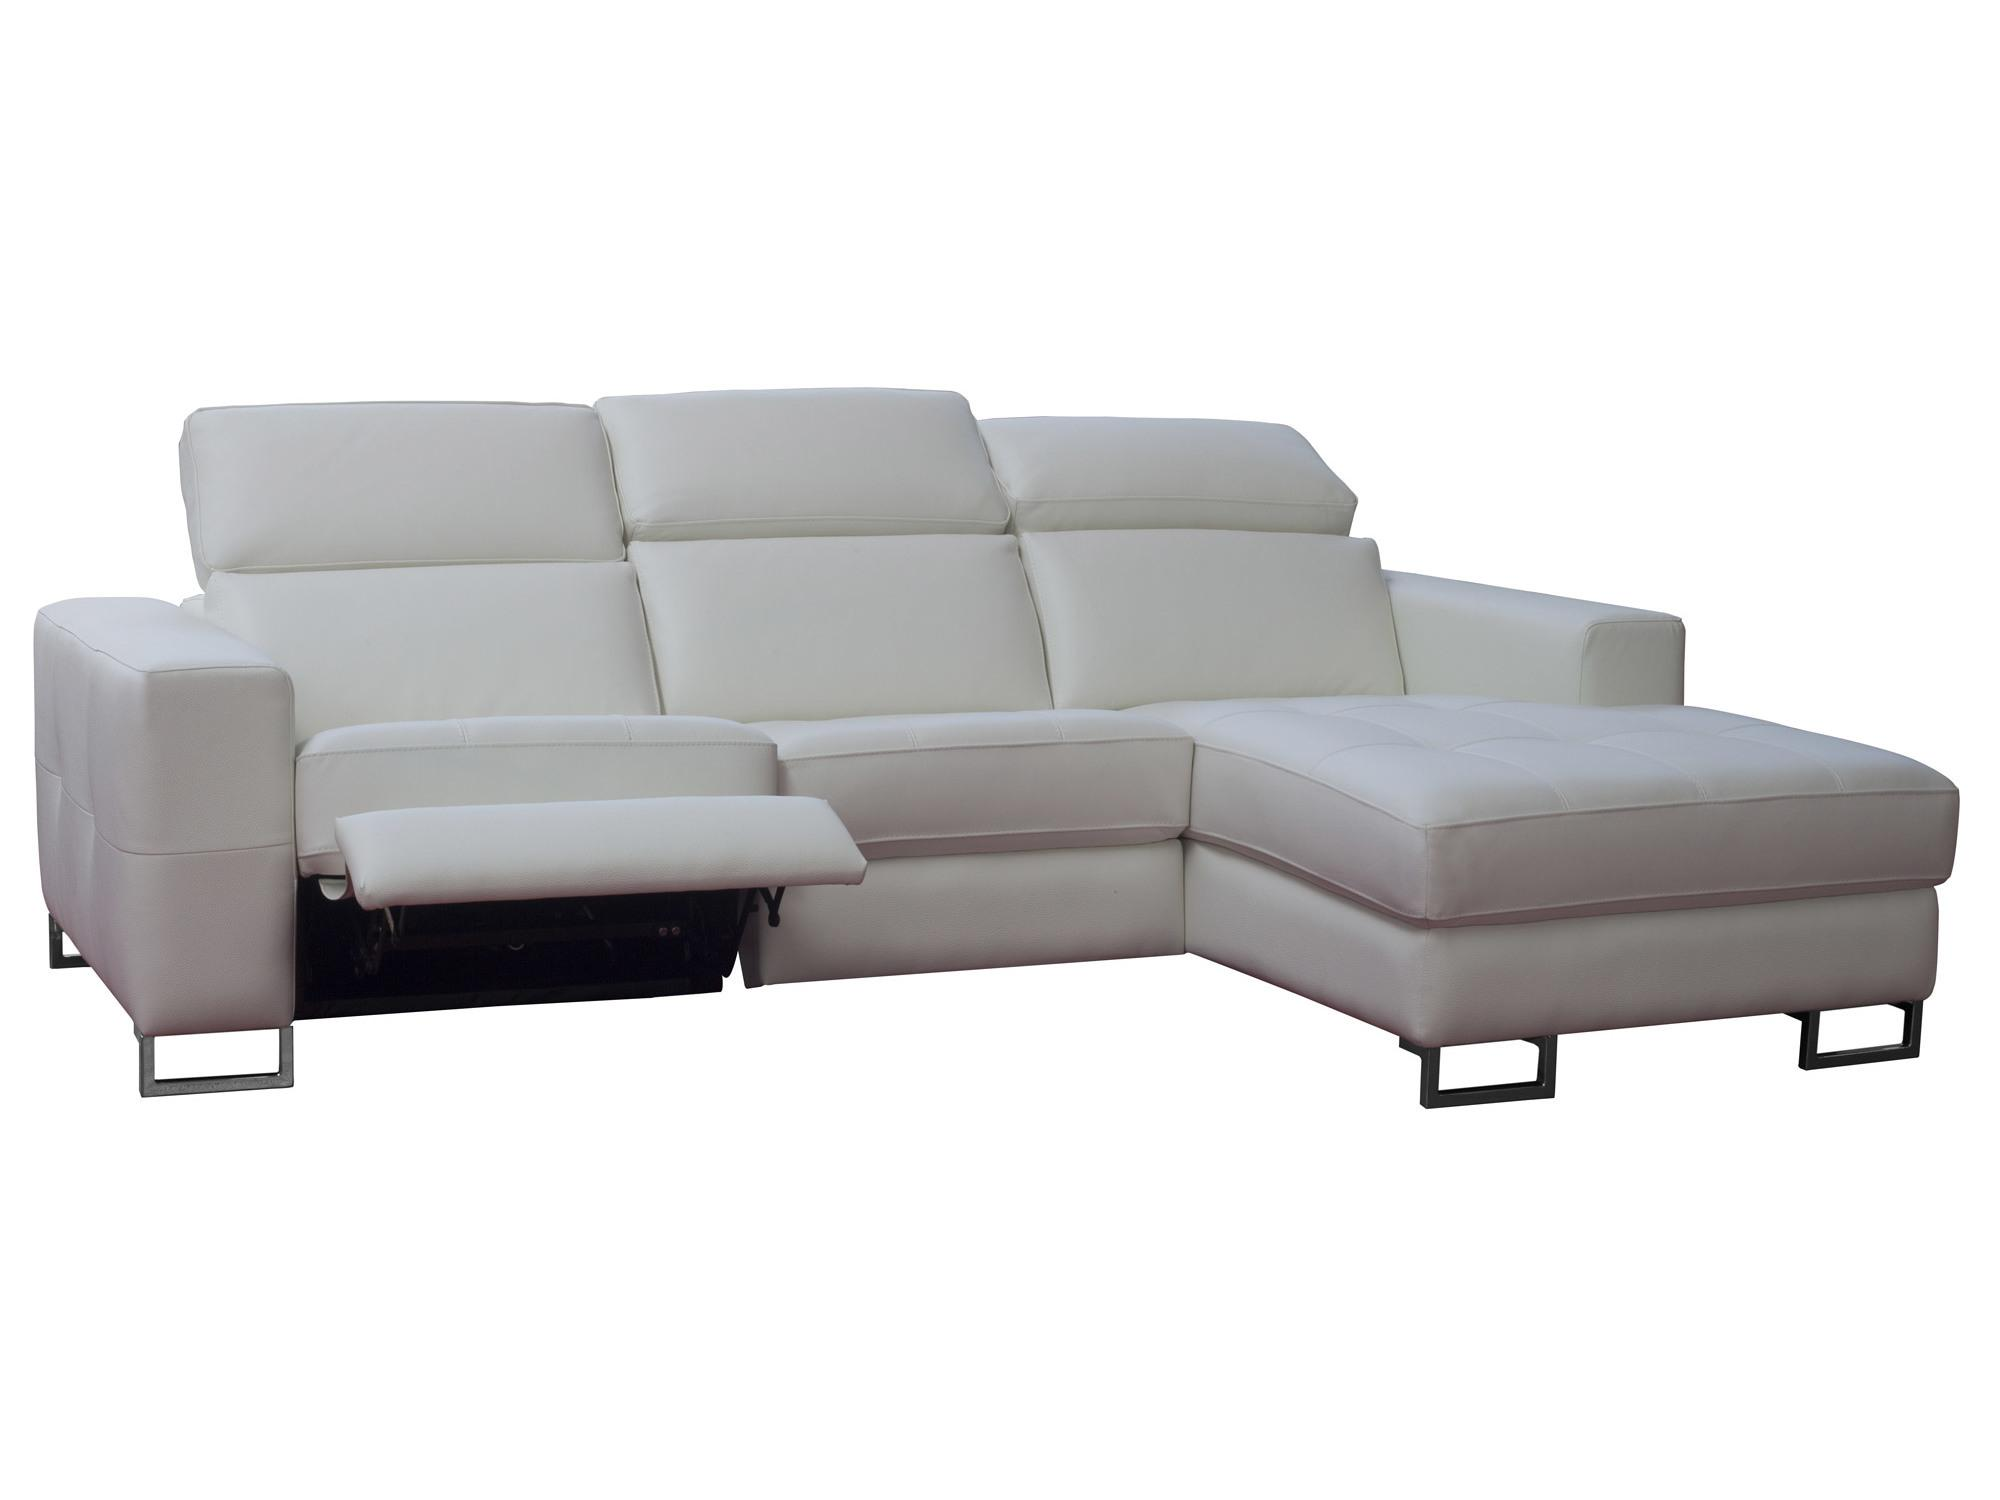 Canape d angle relax electrique cuir